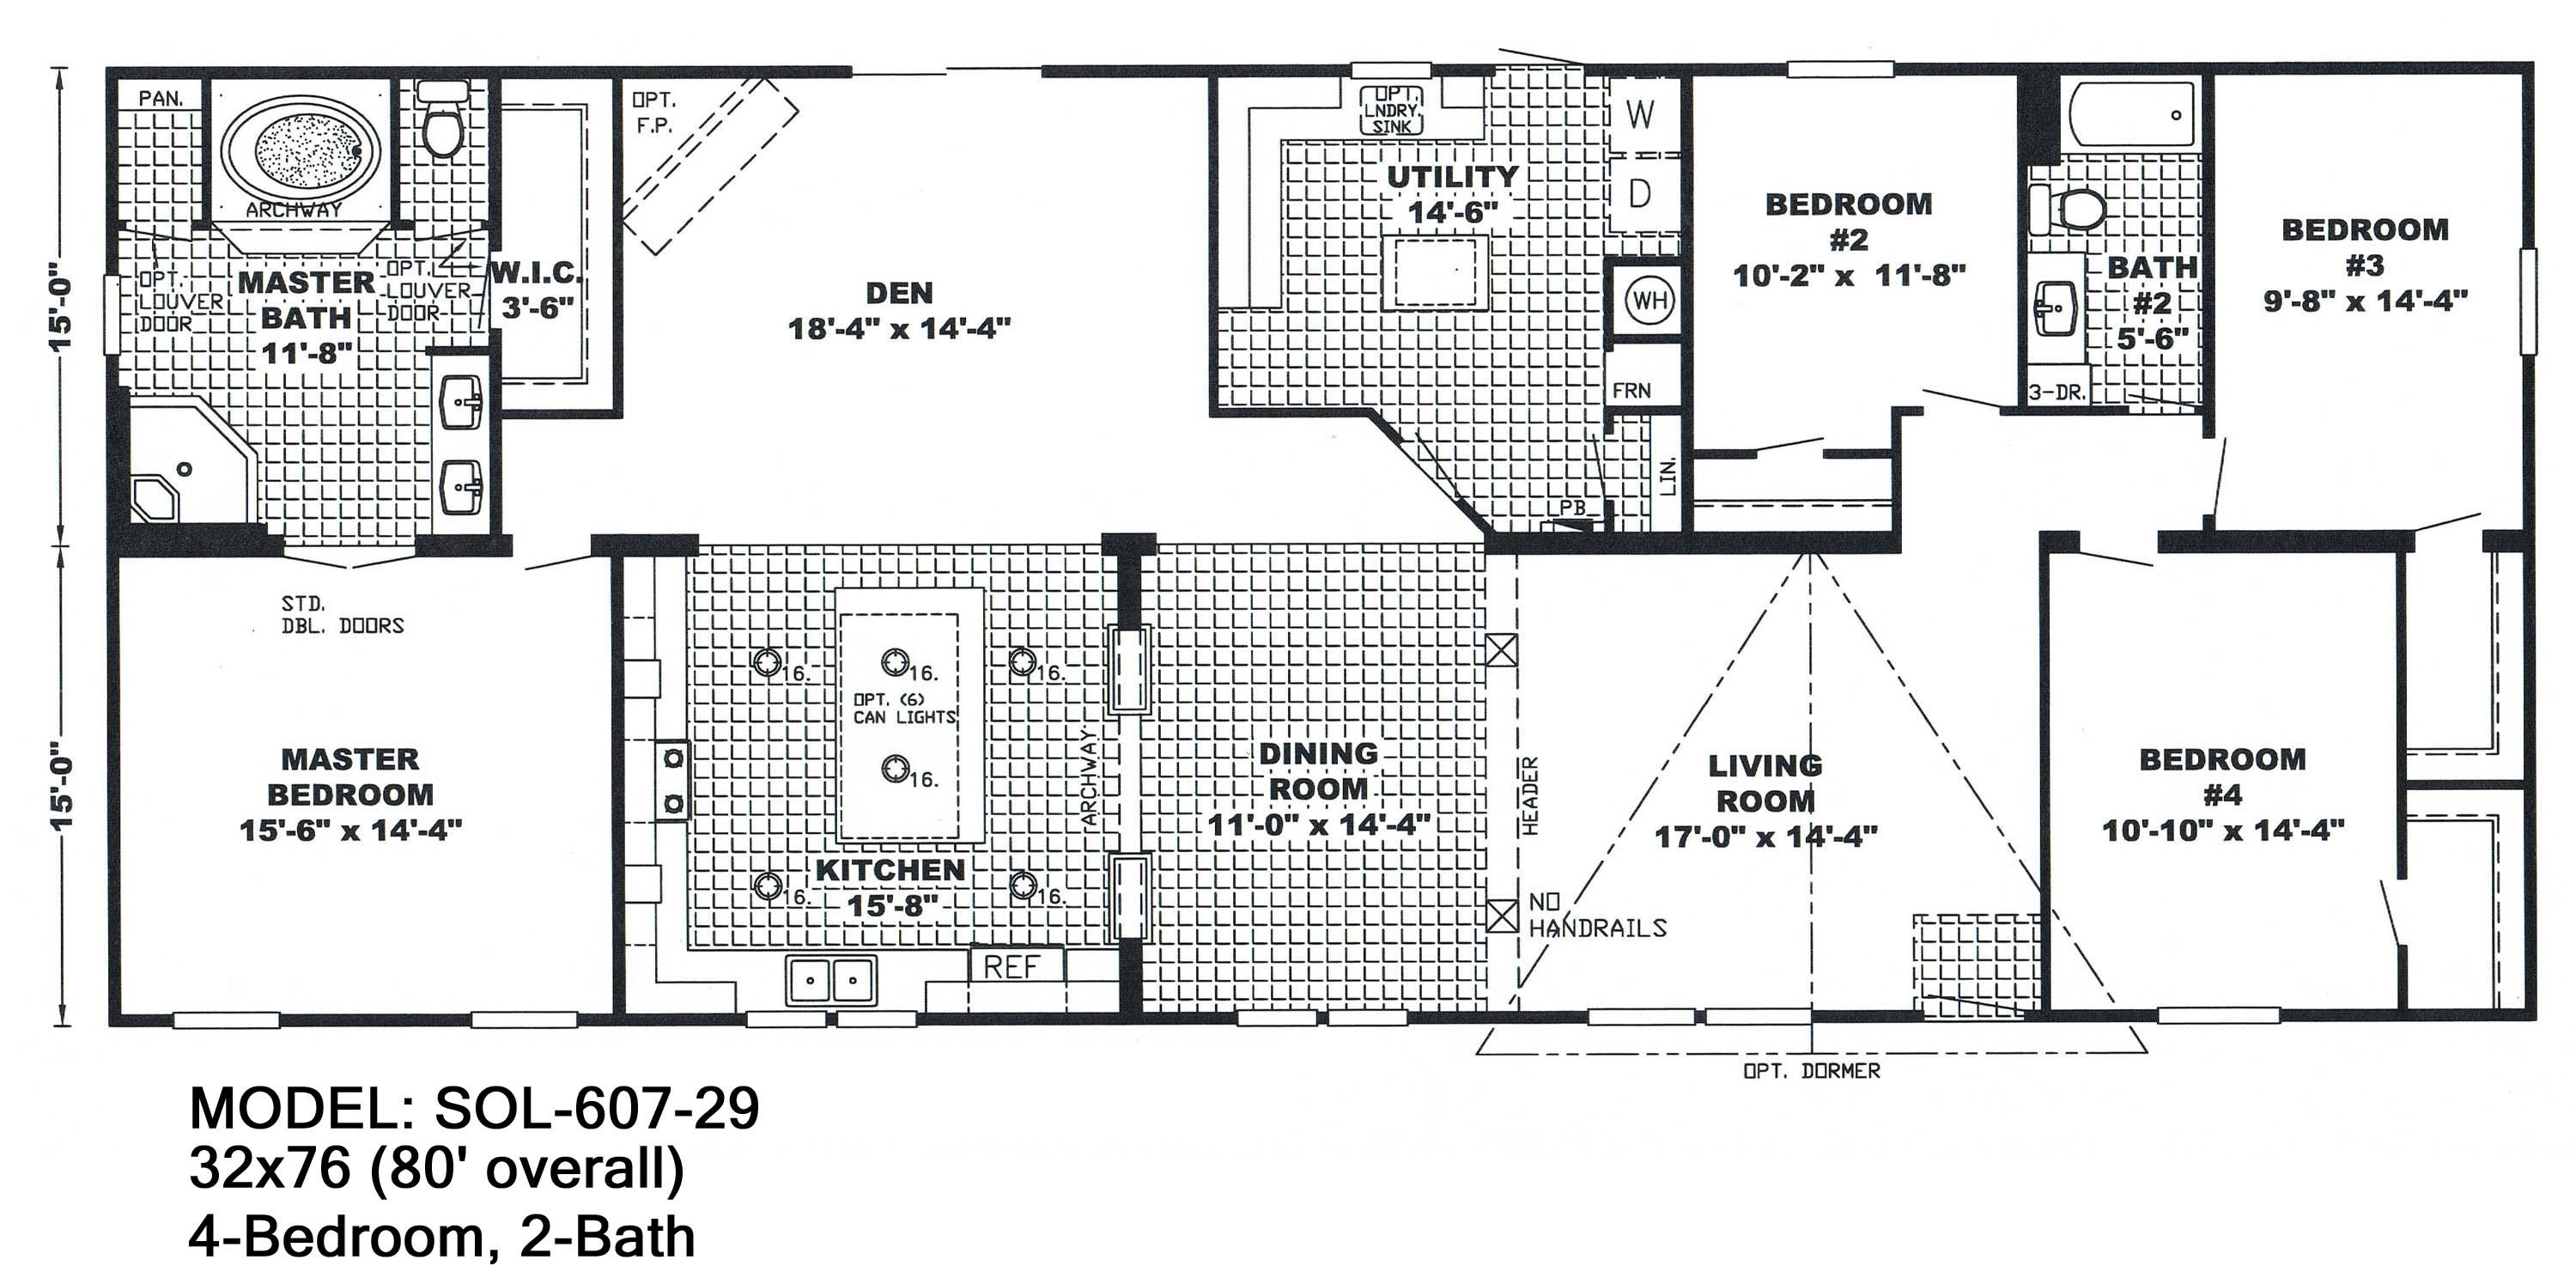 Double Wide Floor Plans 3 Bed 2 Bath Manufactured Homes Floor Plans Mobile Home Floor Plans House Floor Plans